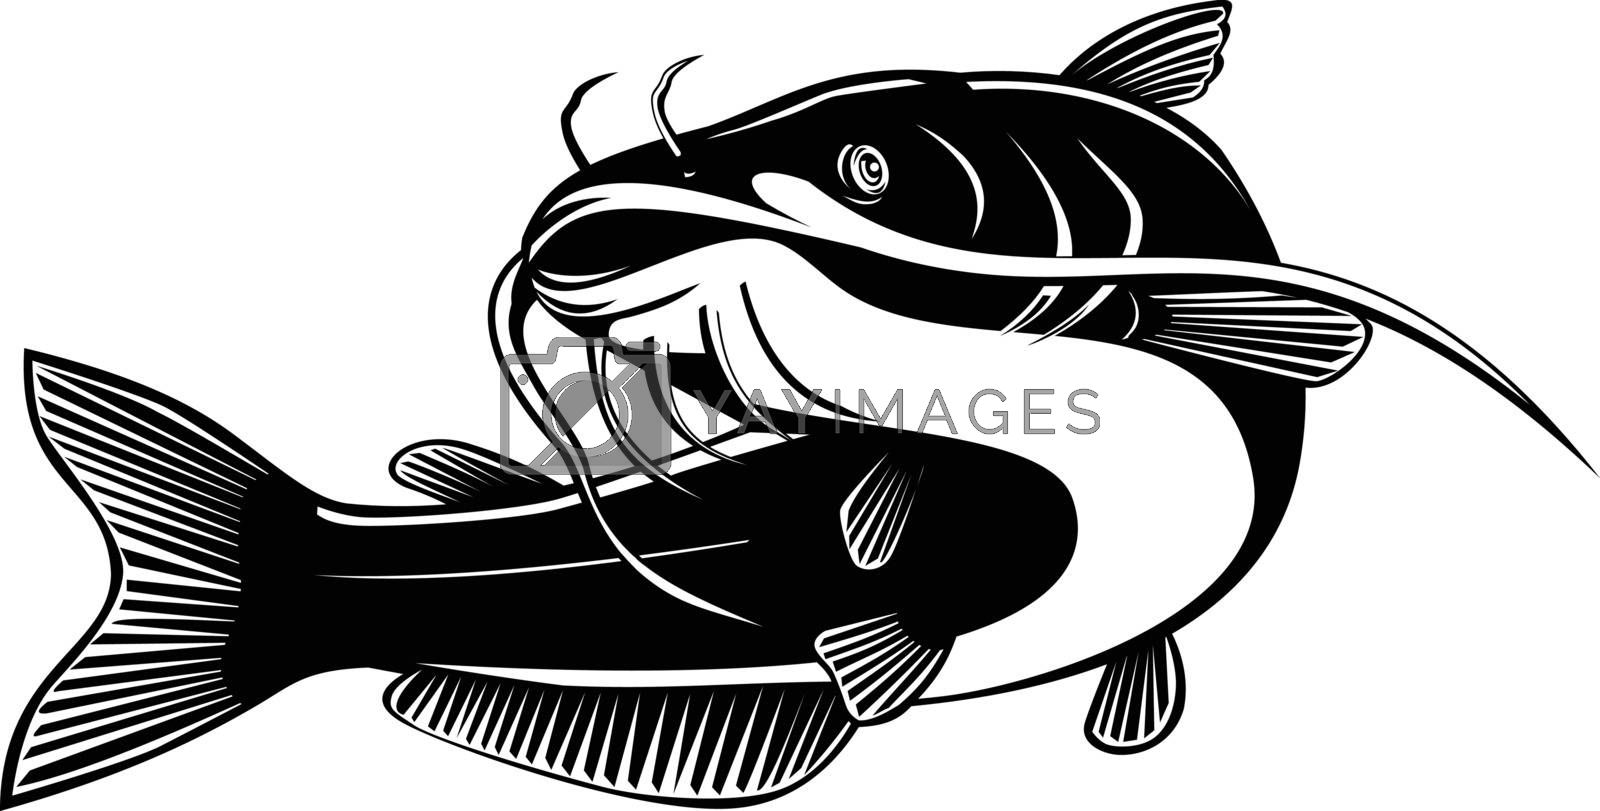 Retro woodcut style illustration of a blue catfish Ictalurus furcatus, largest species of North American catfish, swimming up on isolated background done in black and white.